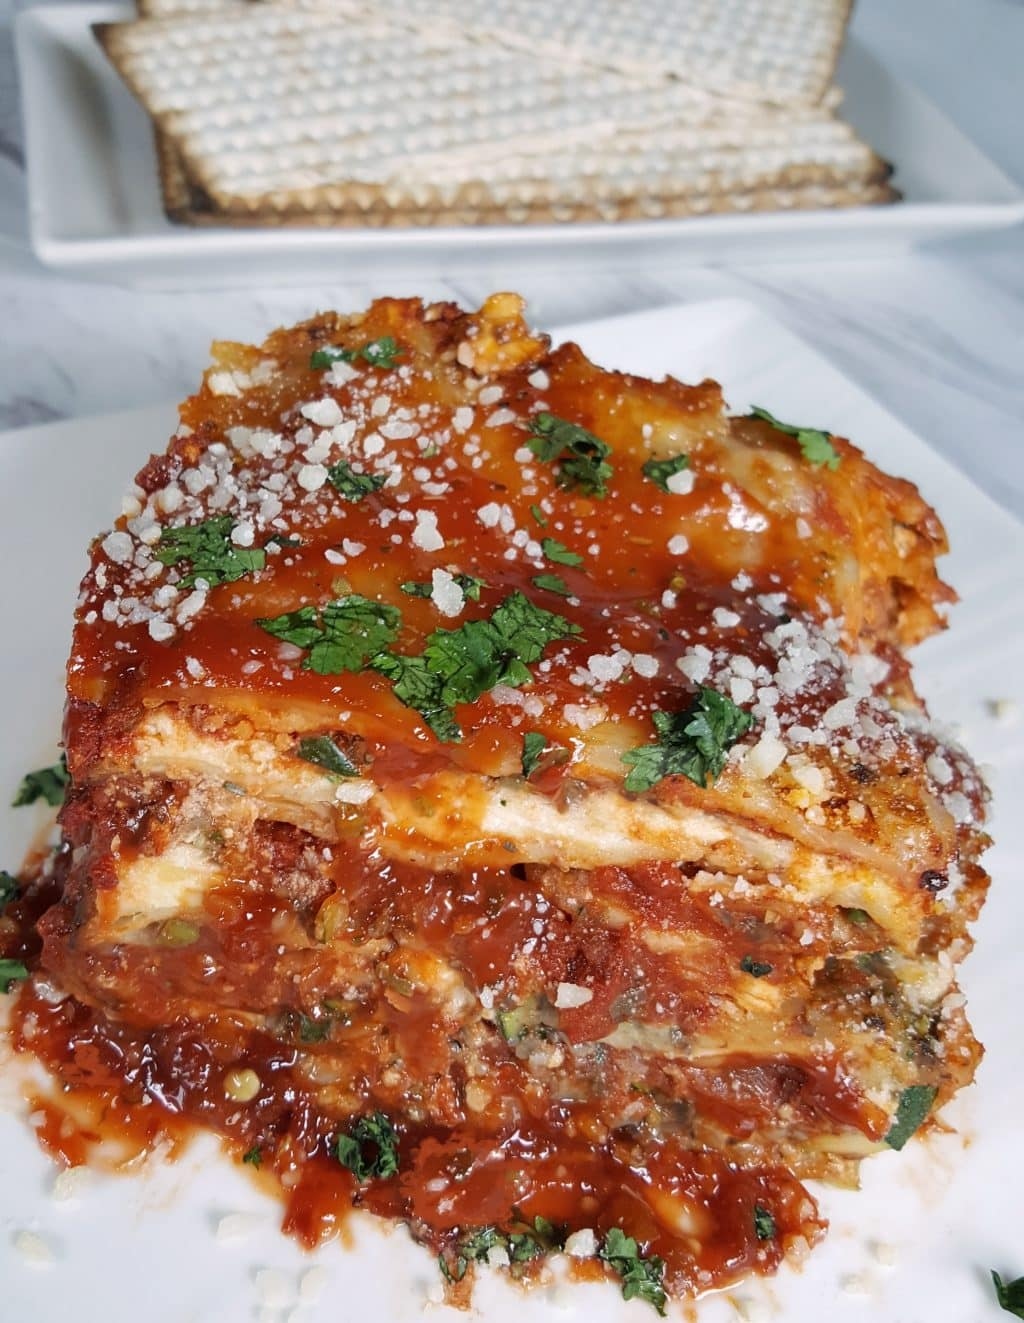 Pressure Cooker Passover Vegetable Matzo Lasagna